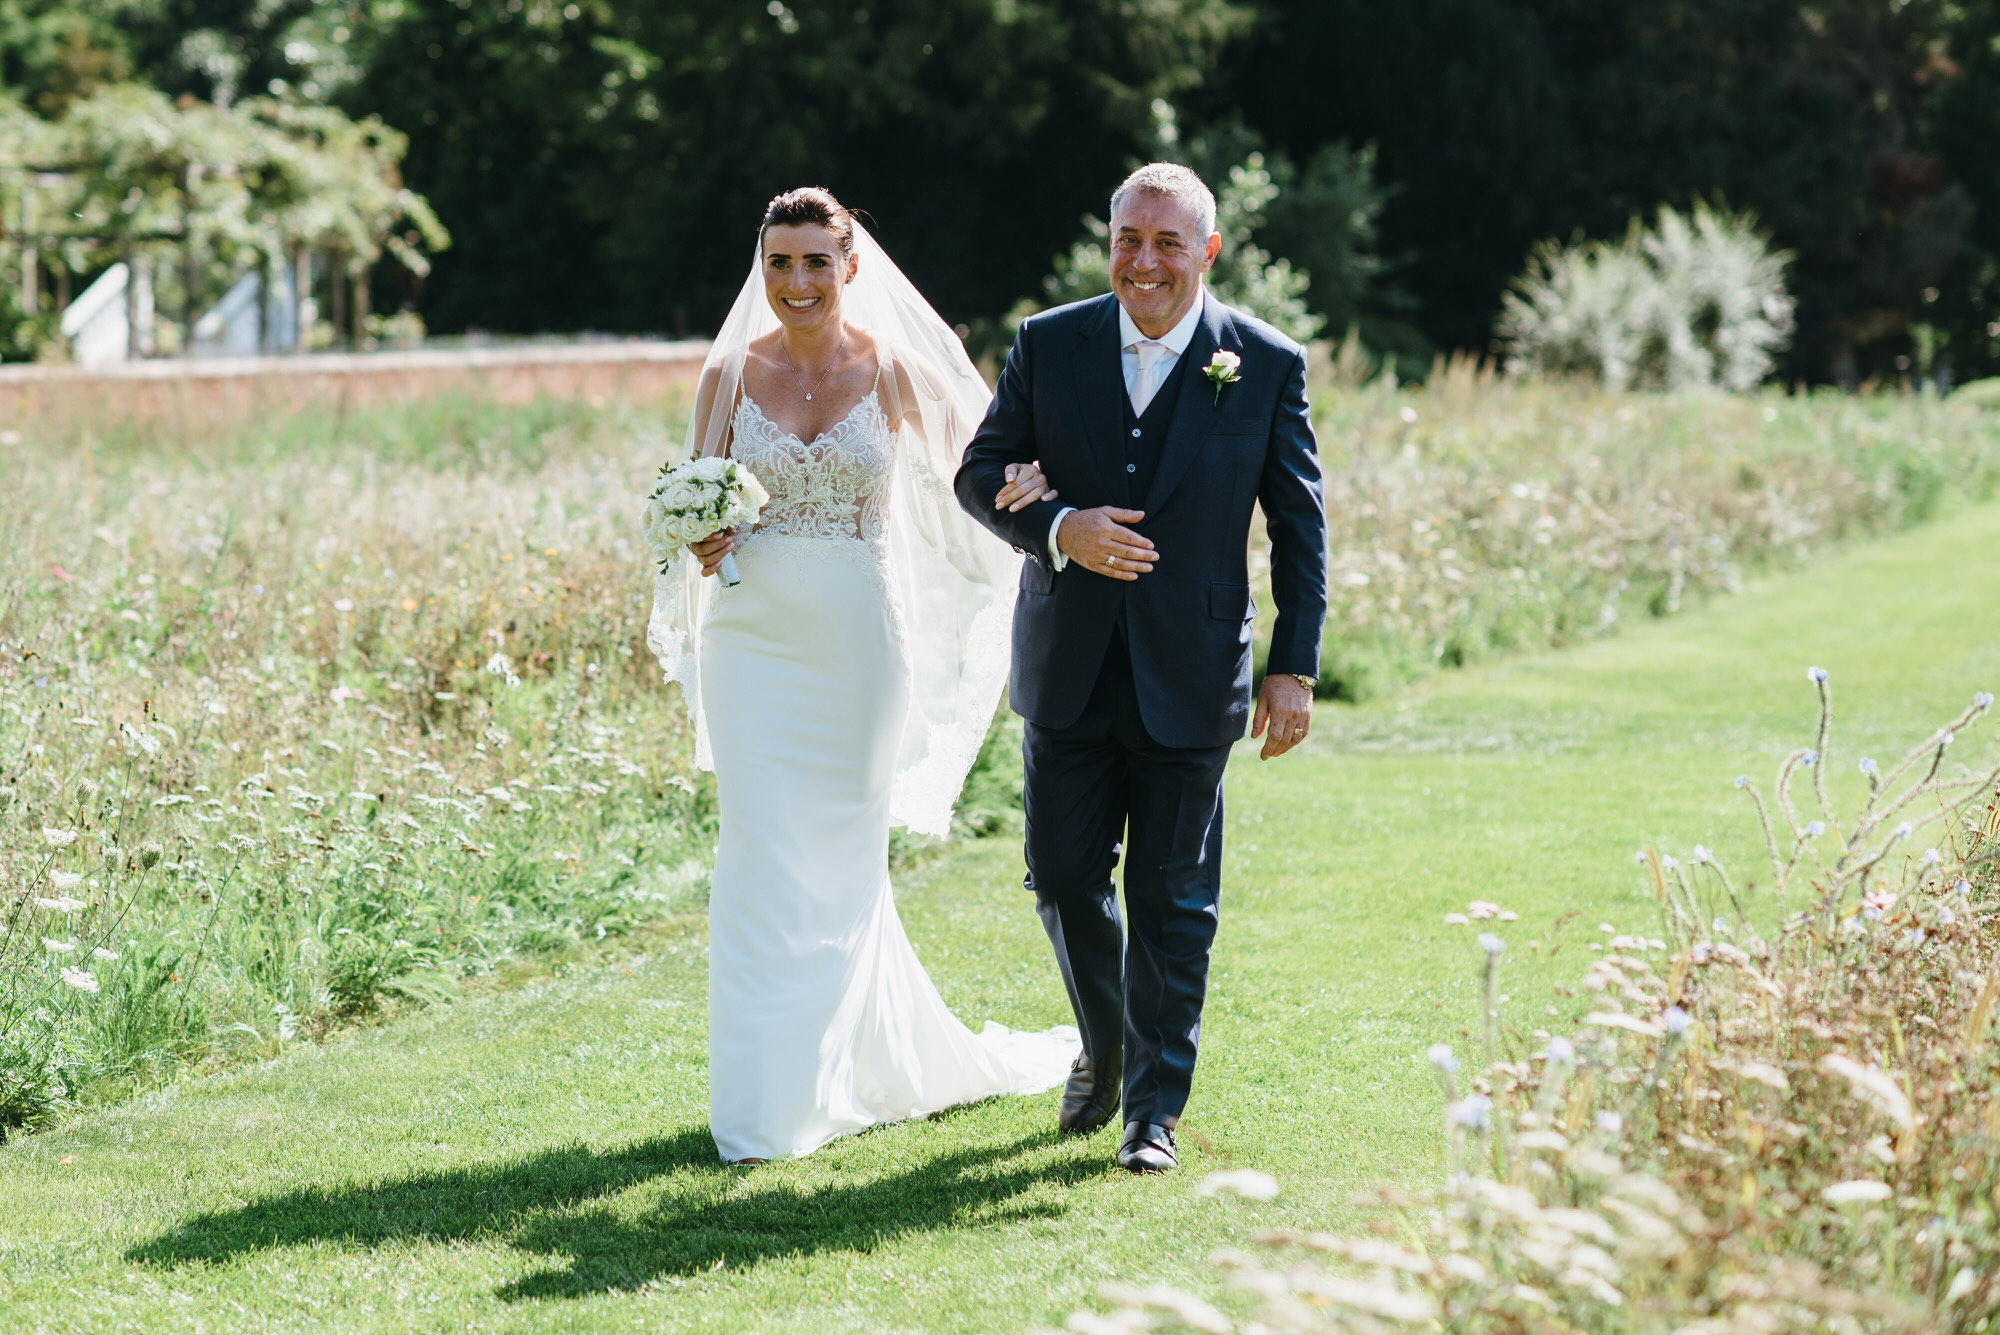 Coworth park outdoor wedding photographer-26